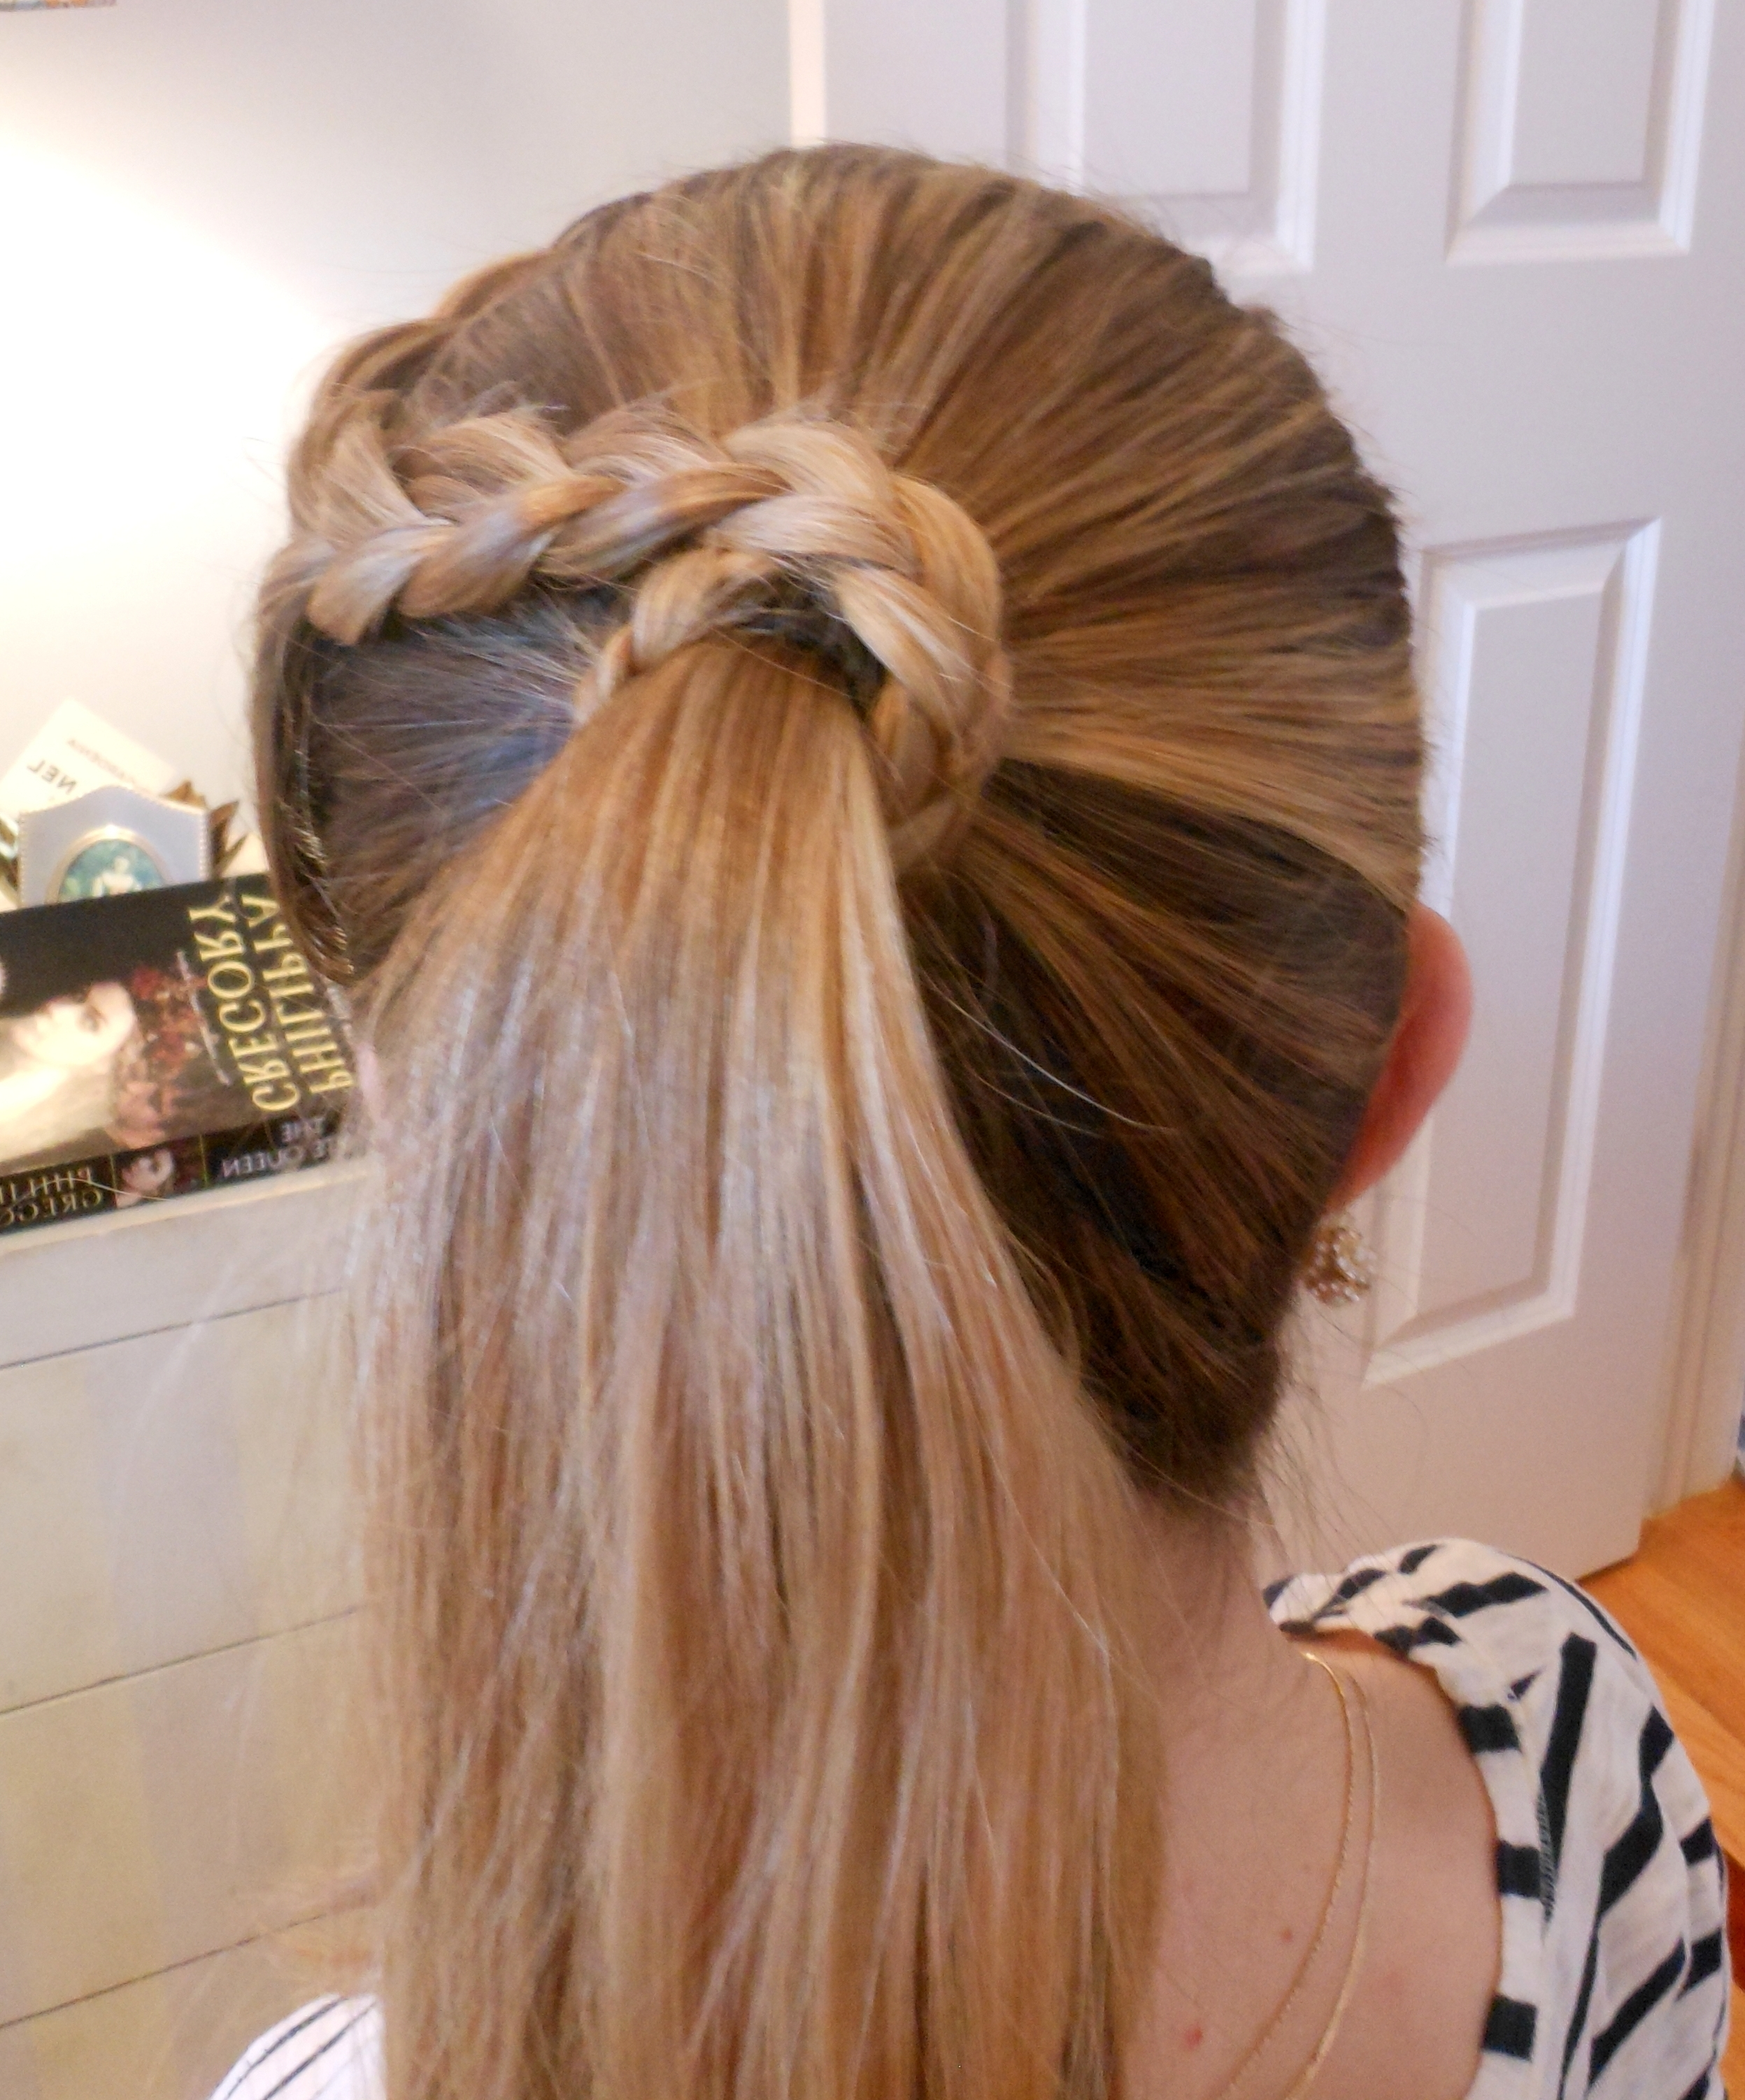 Boardroom To Intended For Most Popular Two Tone Braided Pony Hairstyles (View 4 of 15)